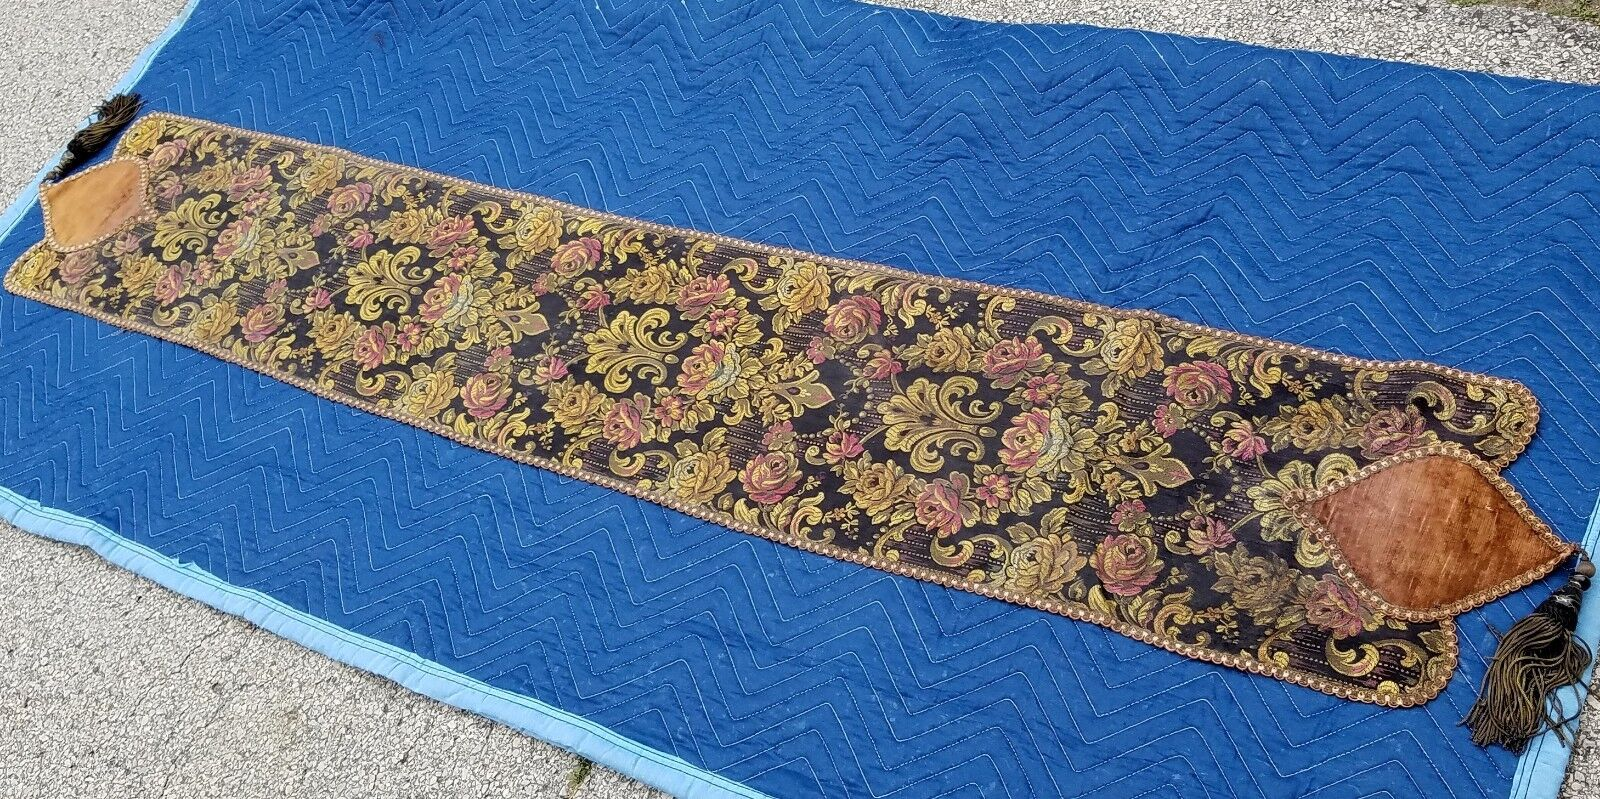 Gorgeous Antique Damask Tapestry Sideboard Table Runner 76x12